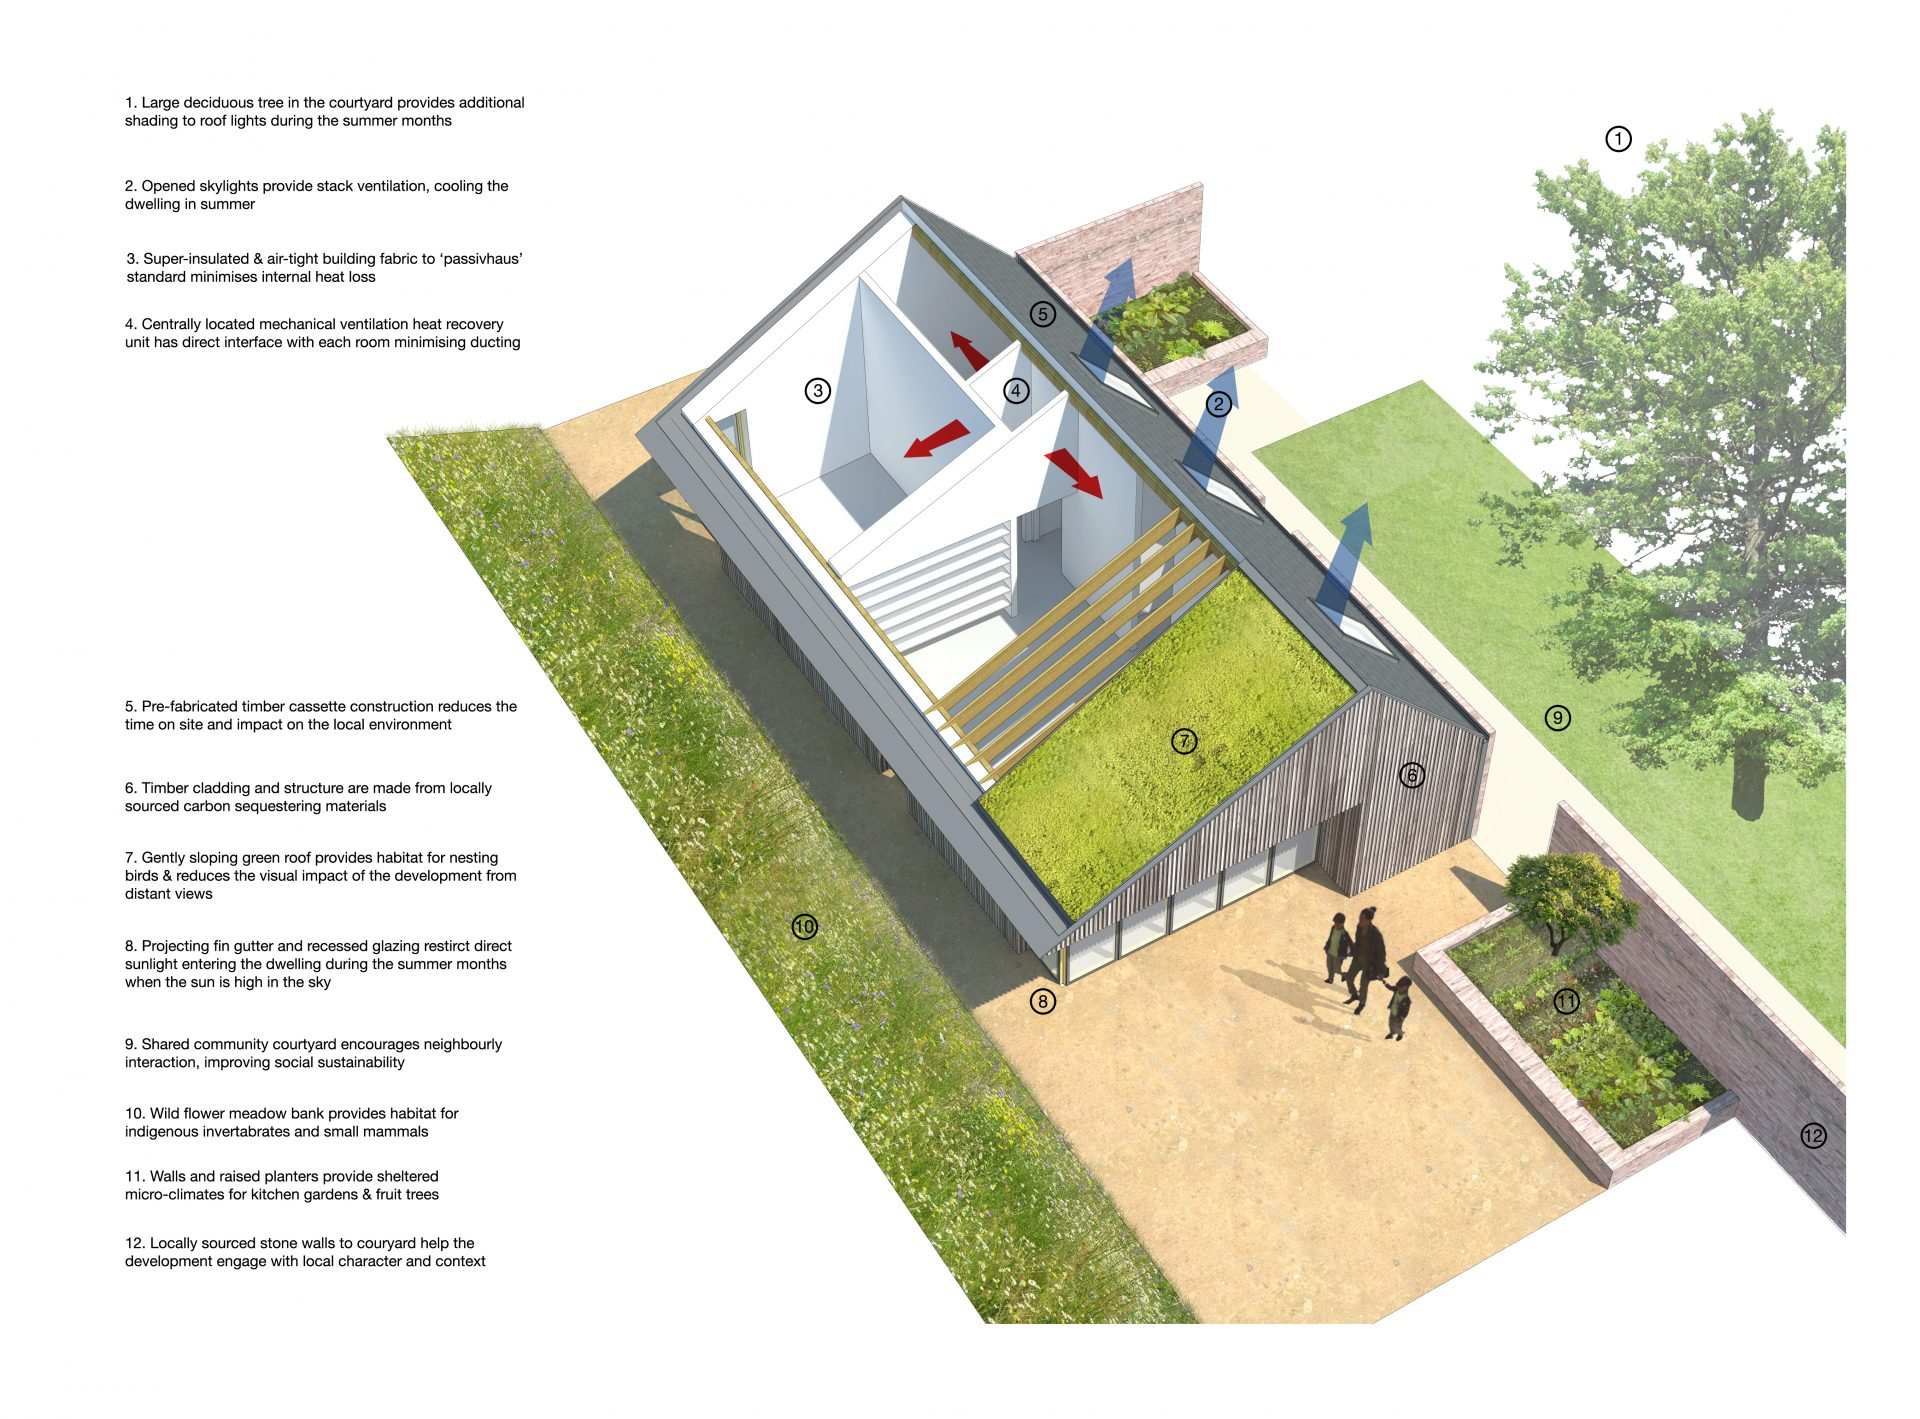 Brompton Ralph Affordable Passivhaus Axonometric Environmental Diagram